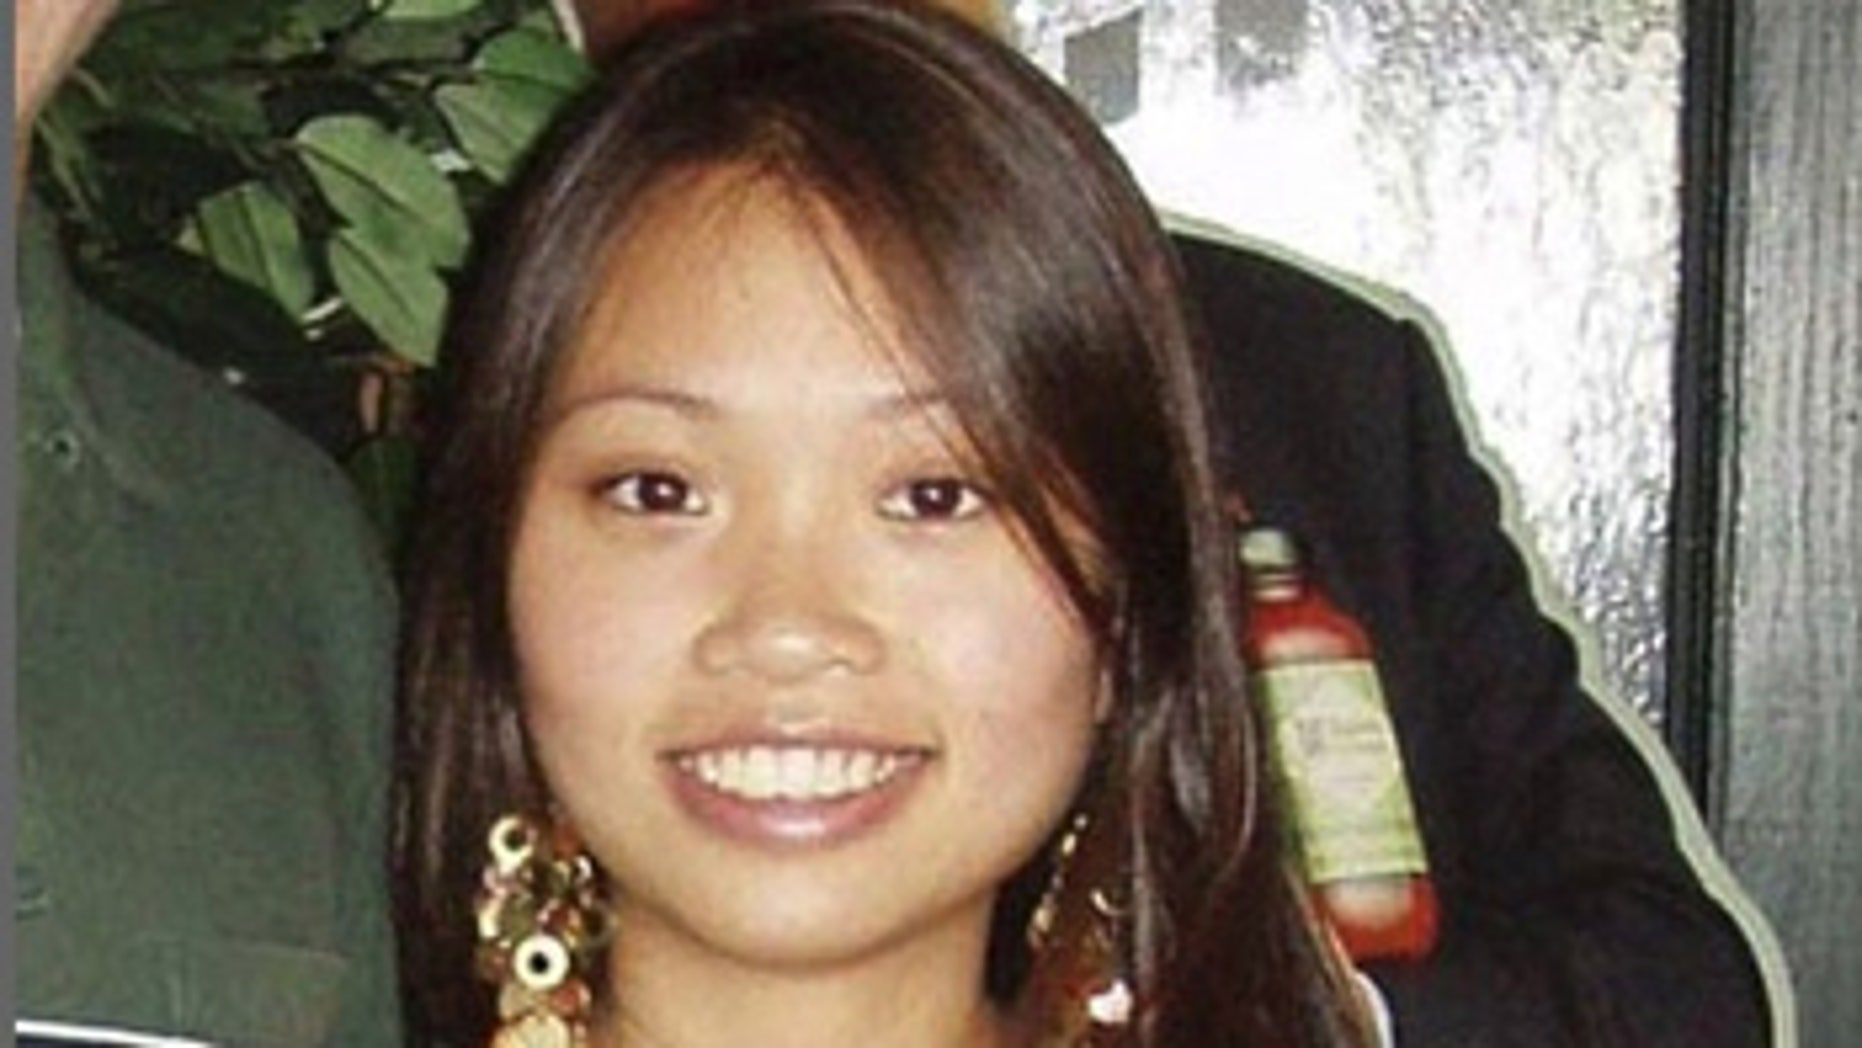 Yale University graduate student Annie Le is seen in this undated image